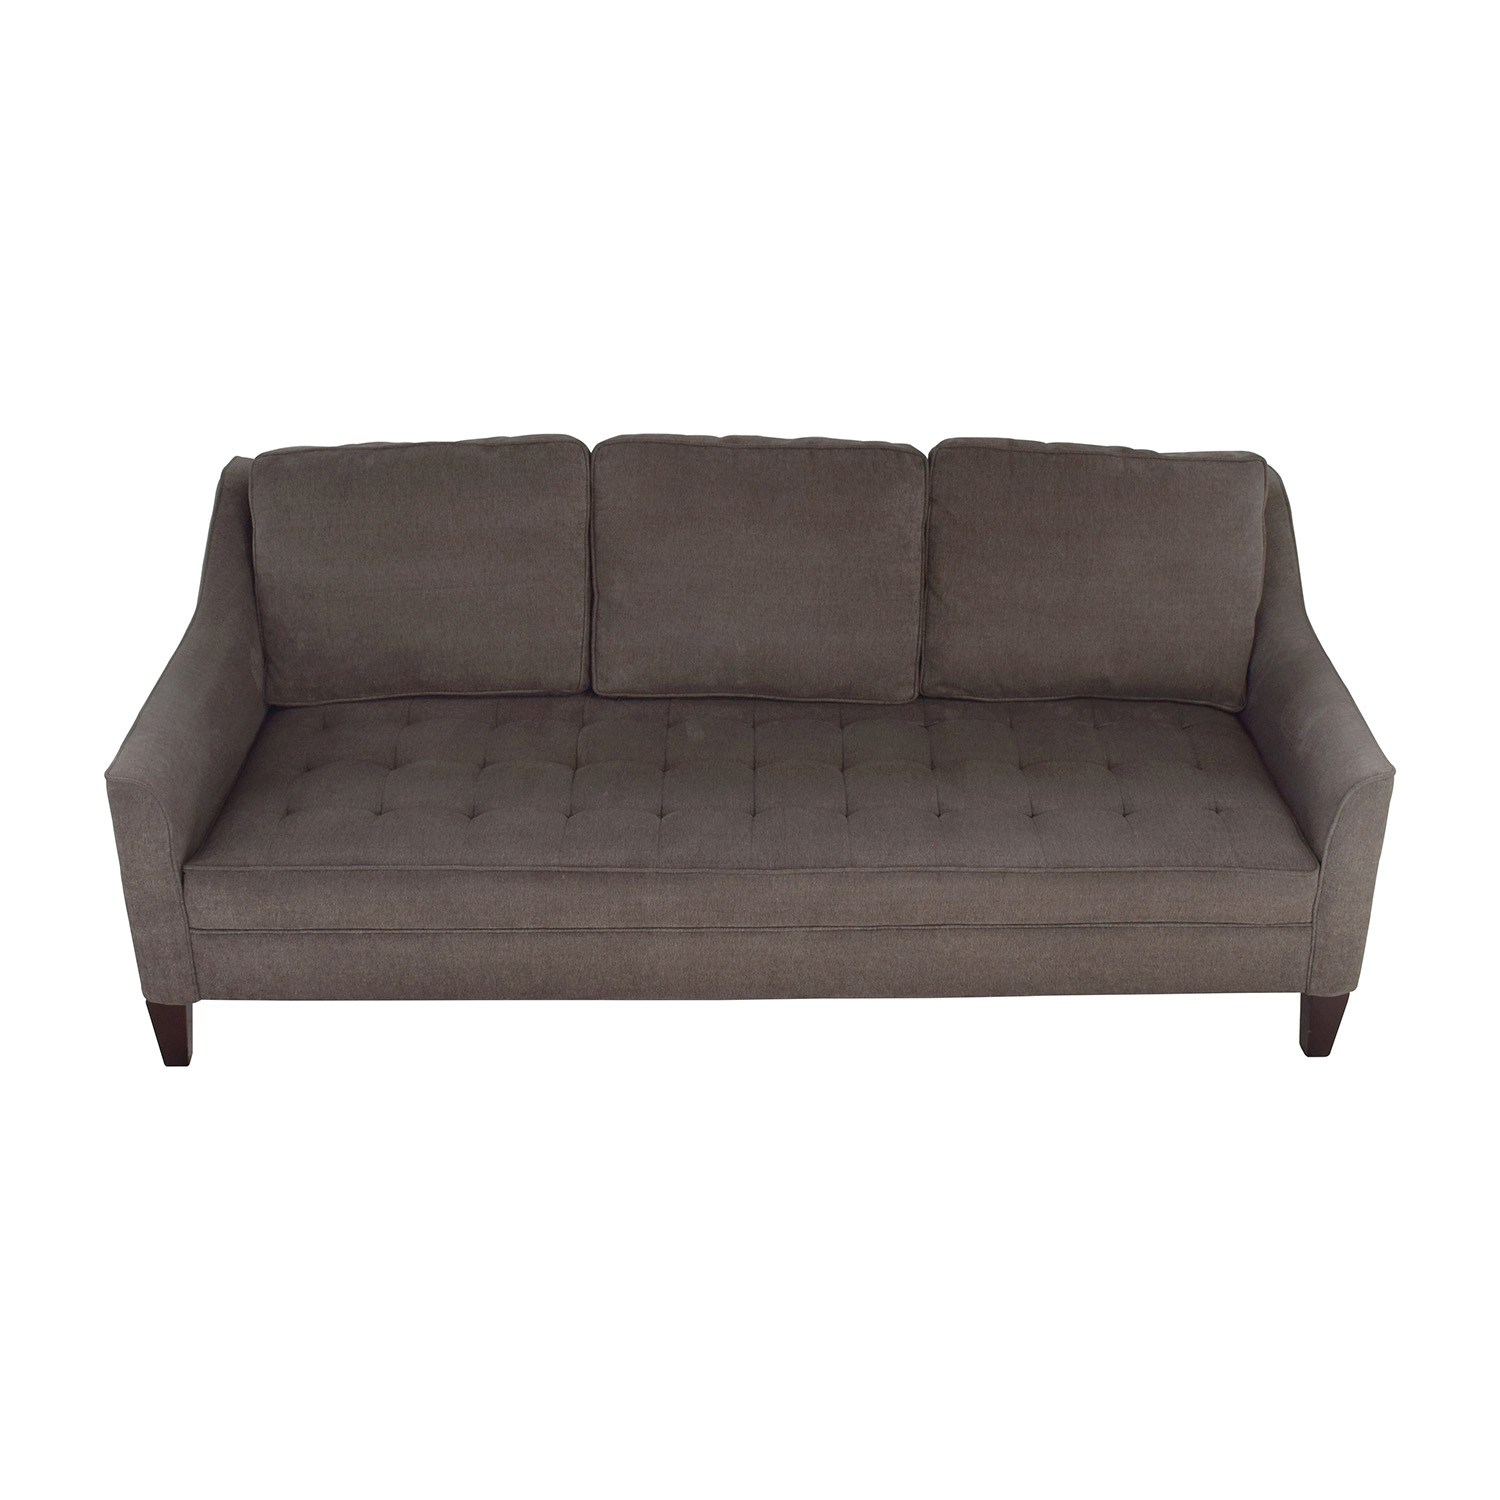 47% OFF CB2 CB2 Lumi Blue Day Bed Sofas